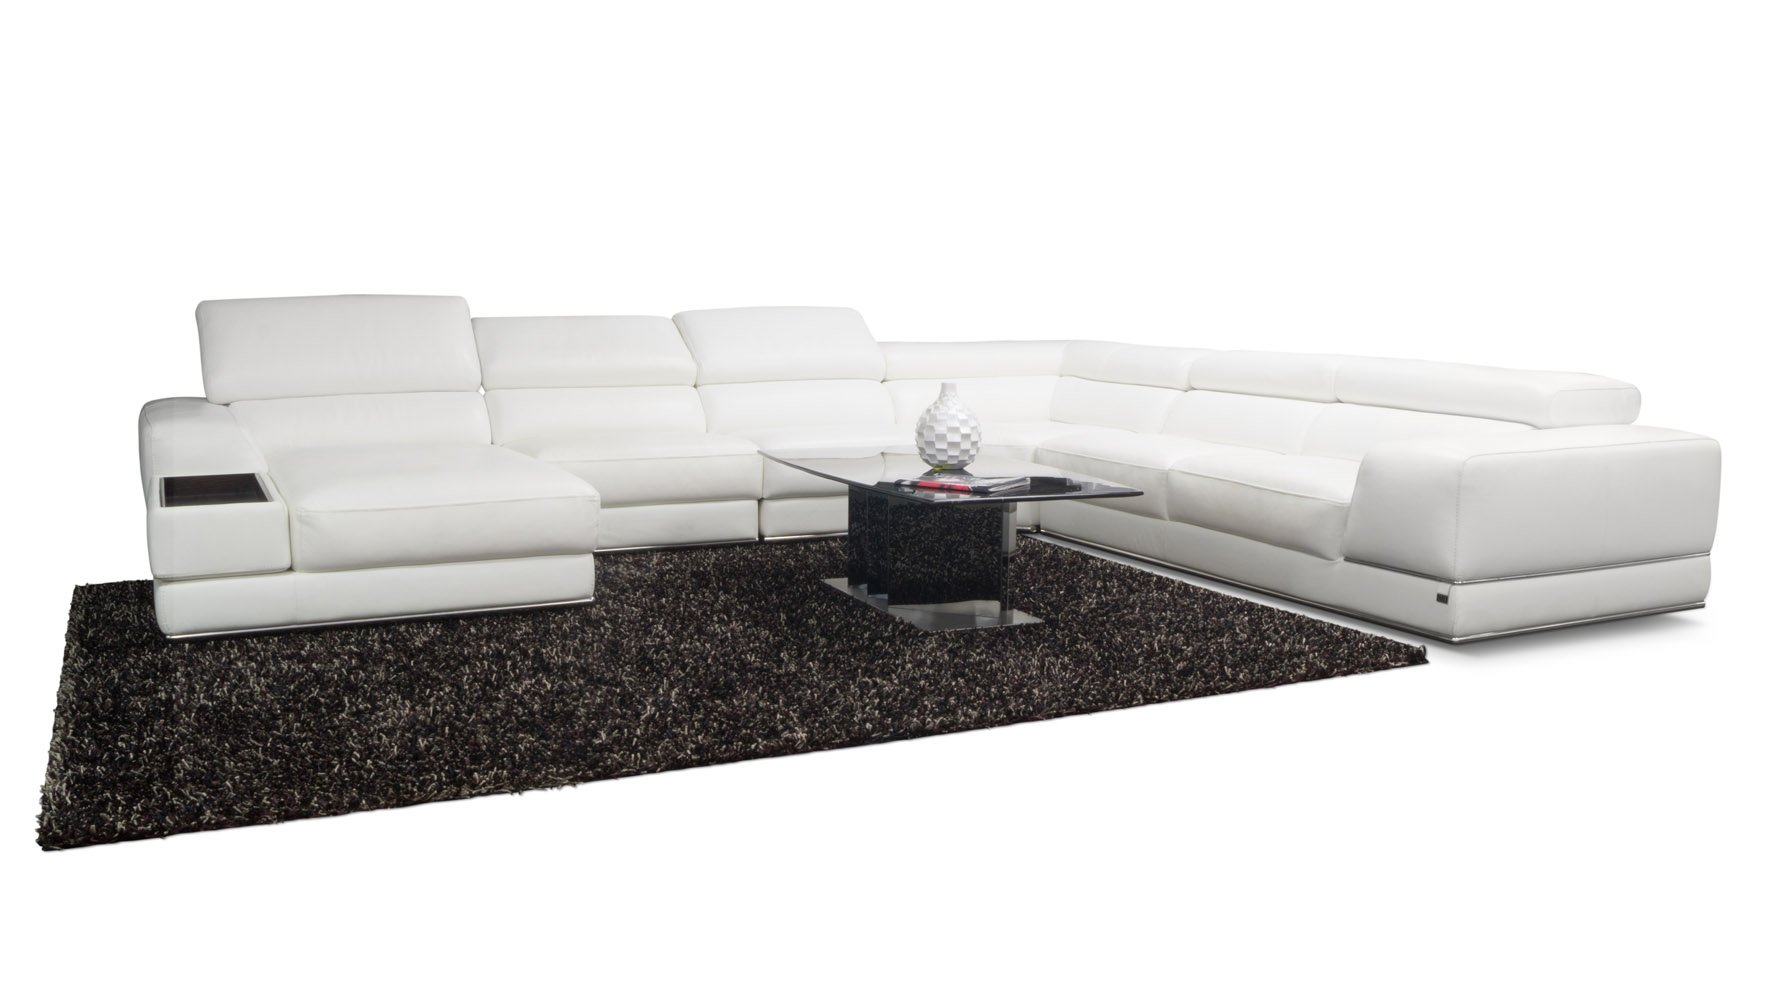 Wynn Leather Sectional Sofa With Adjustable Headrests Right Chaise